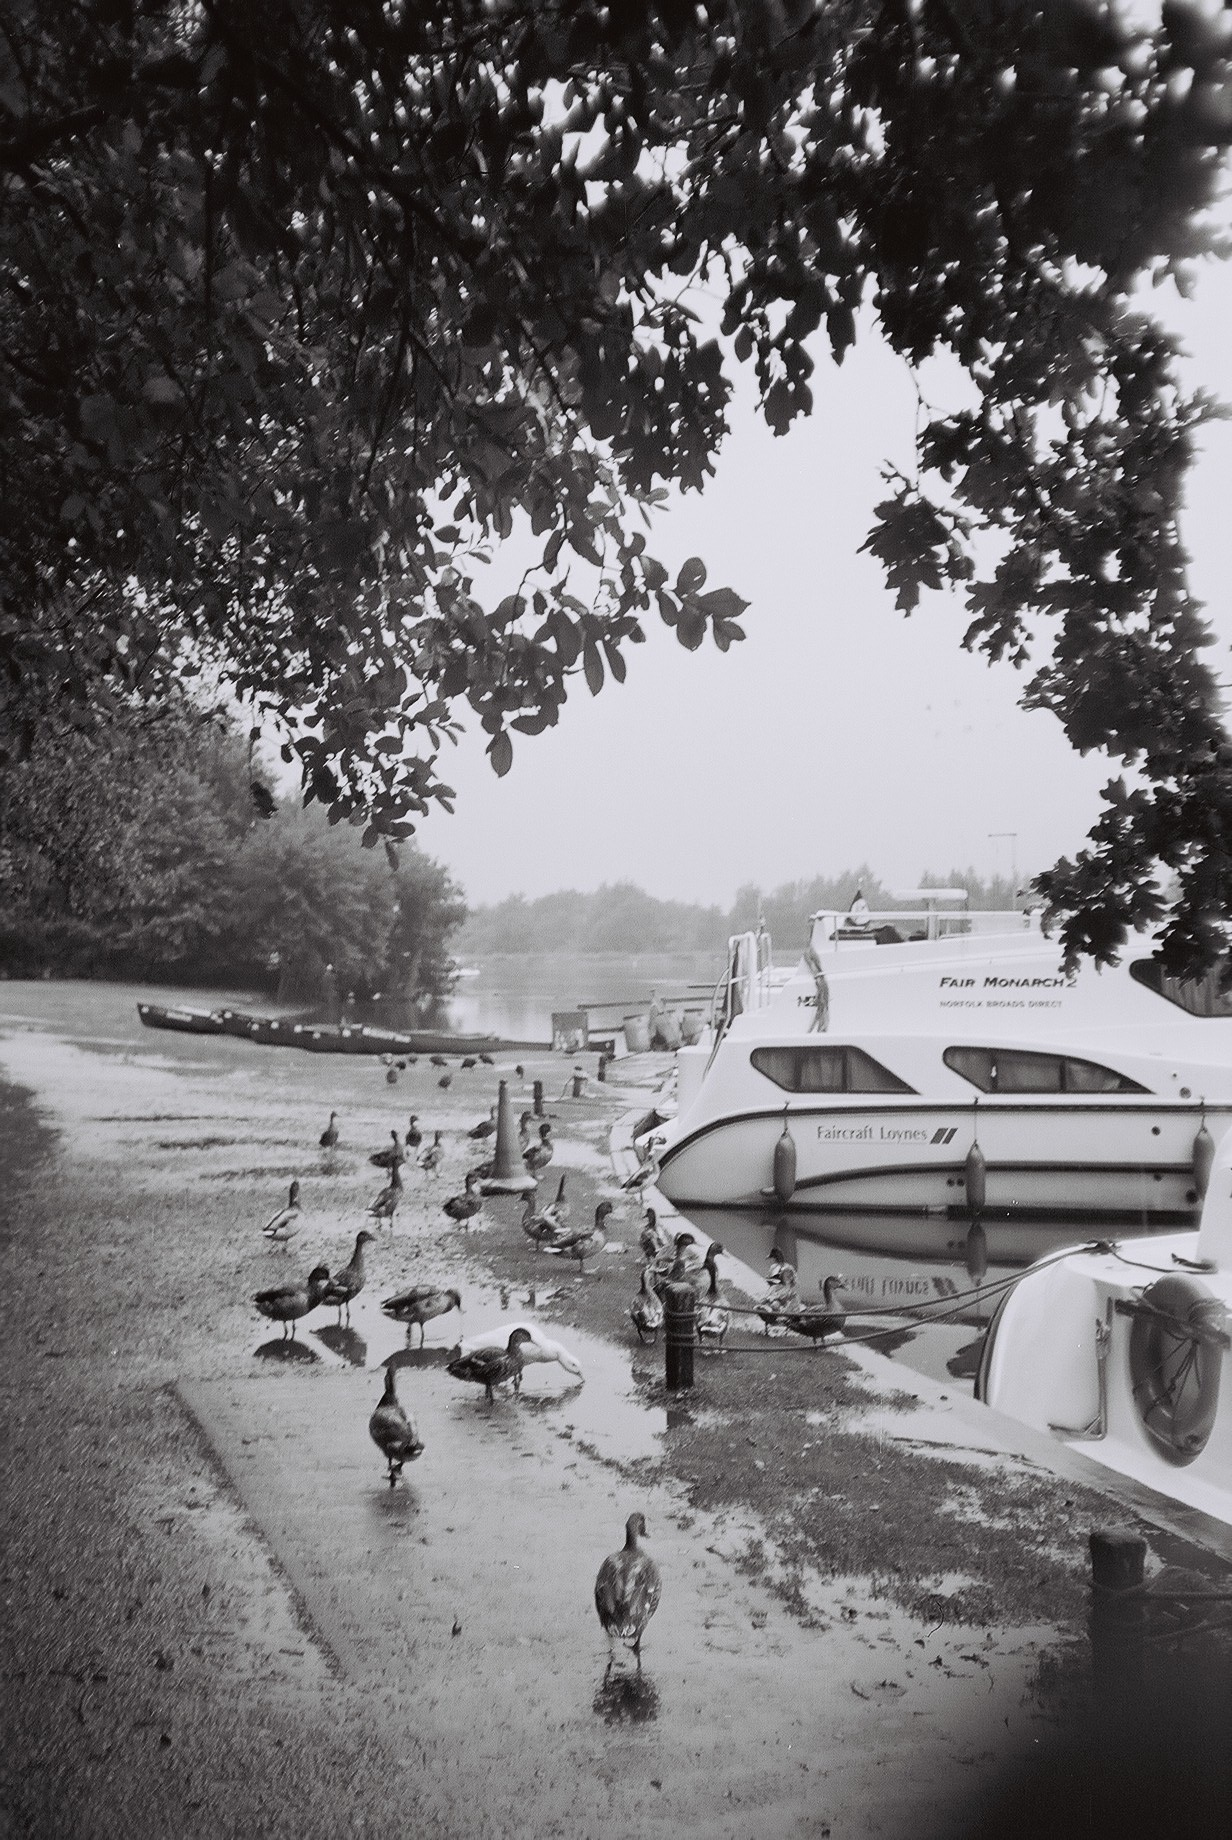 Ducks, boats, and rainy holidays